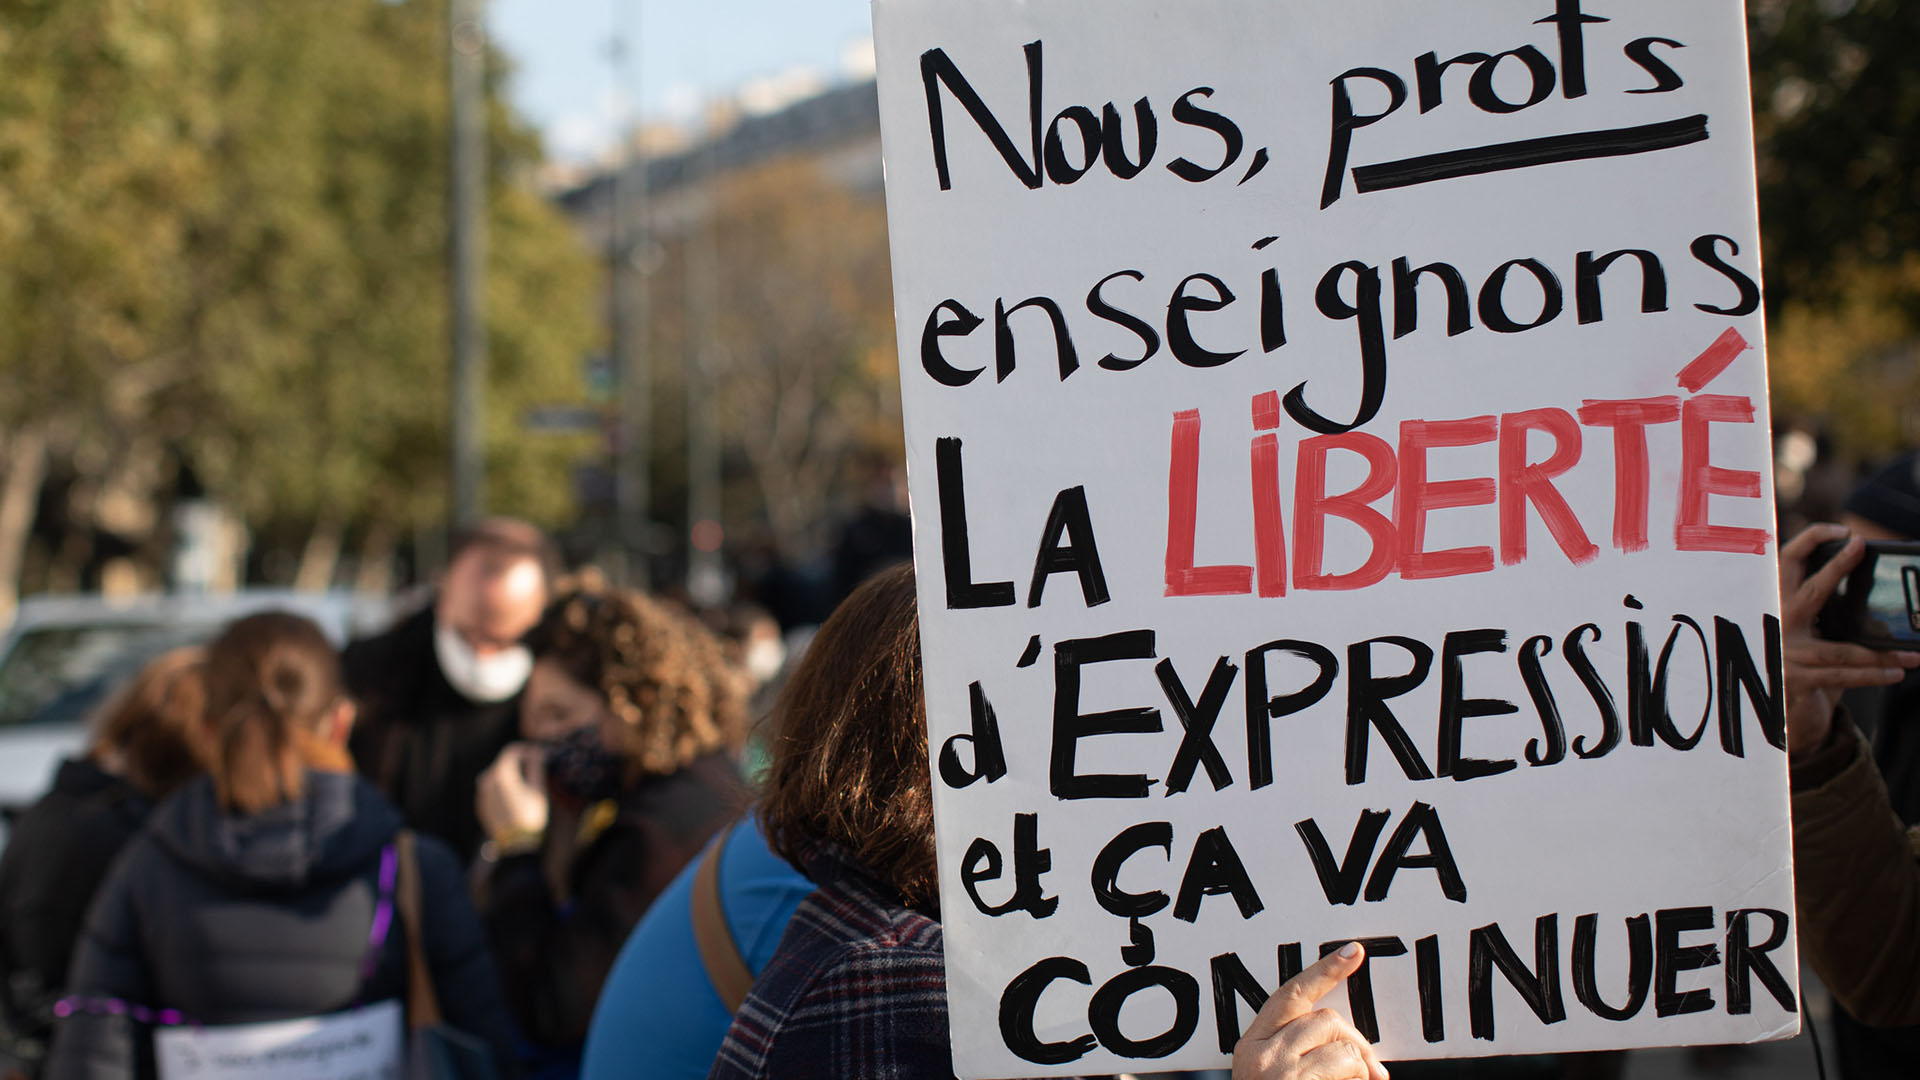 https://www.numerama.com/content/uploads/2020/10/manifestation-france-liberte-expression.jpg